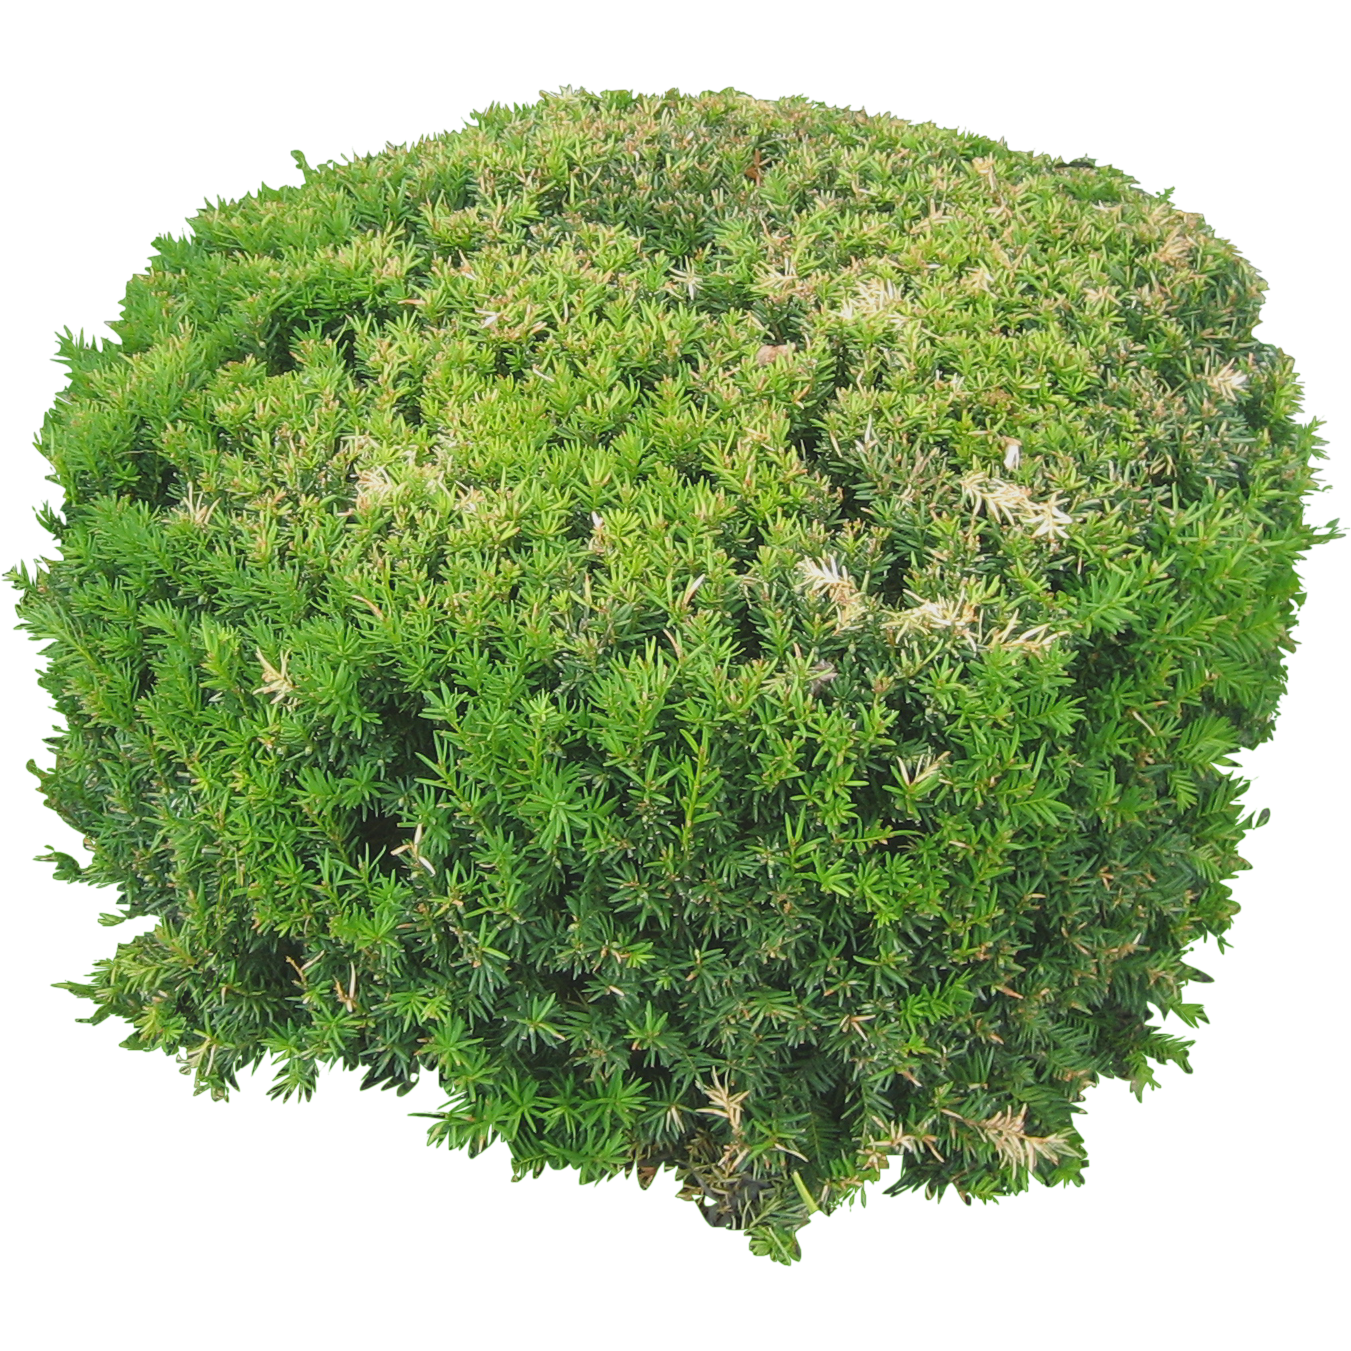 plants flowers png image top view